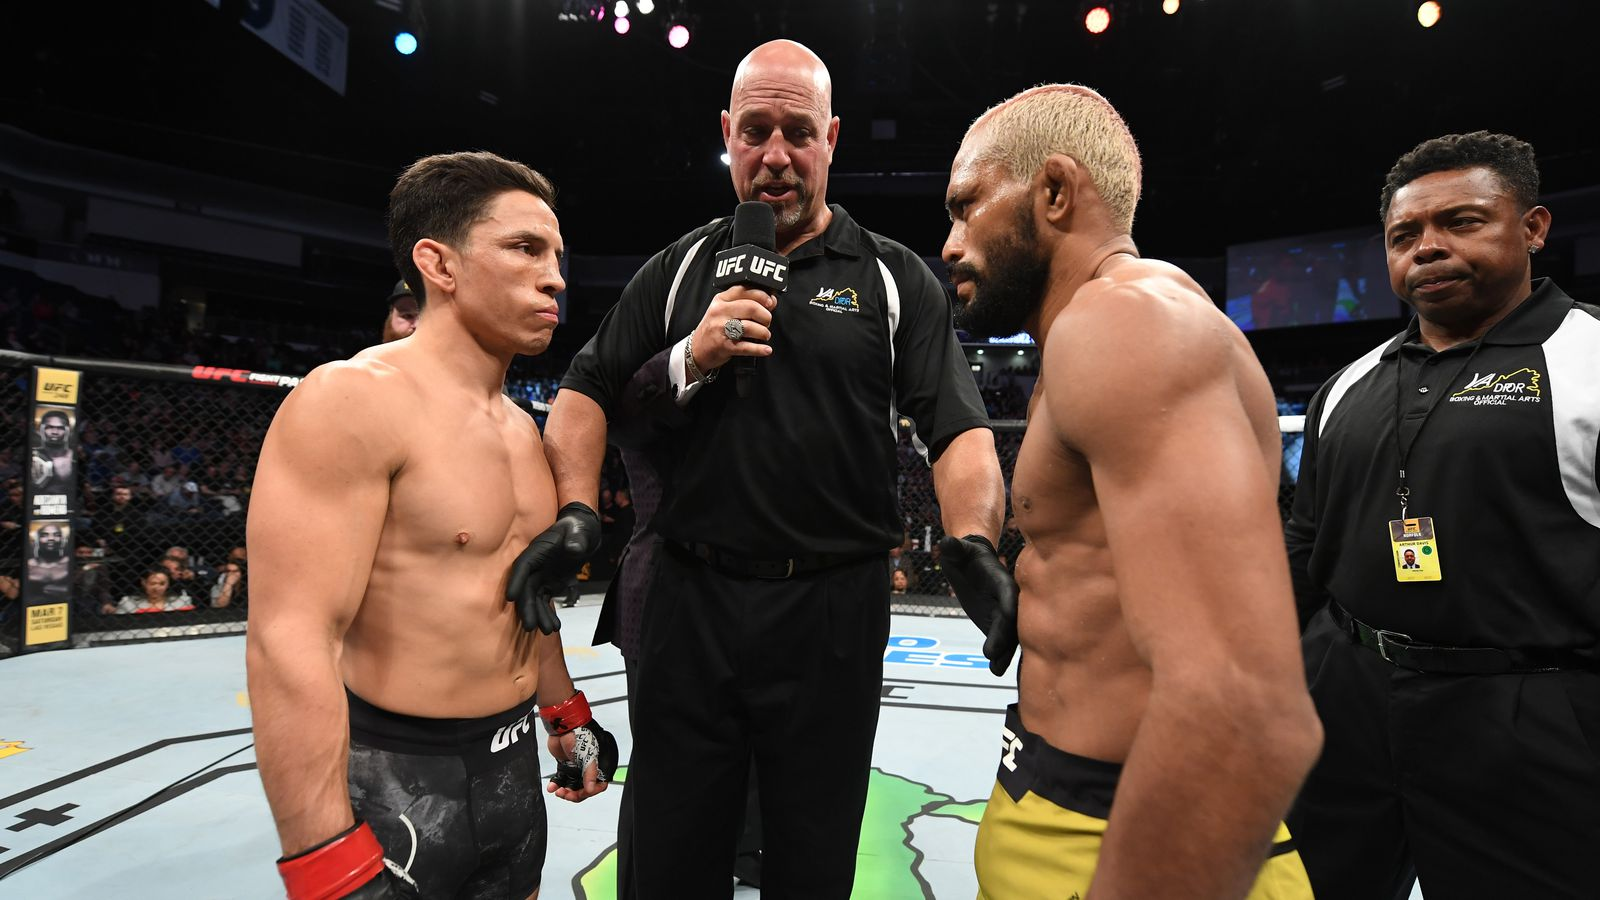 Joseph Benavidez wants to hurt 'villain' Deiveson Figueiredo for bragging about head-butt in first fight – MMA Mania